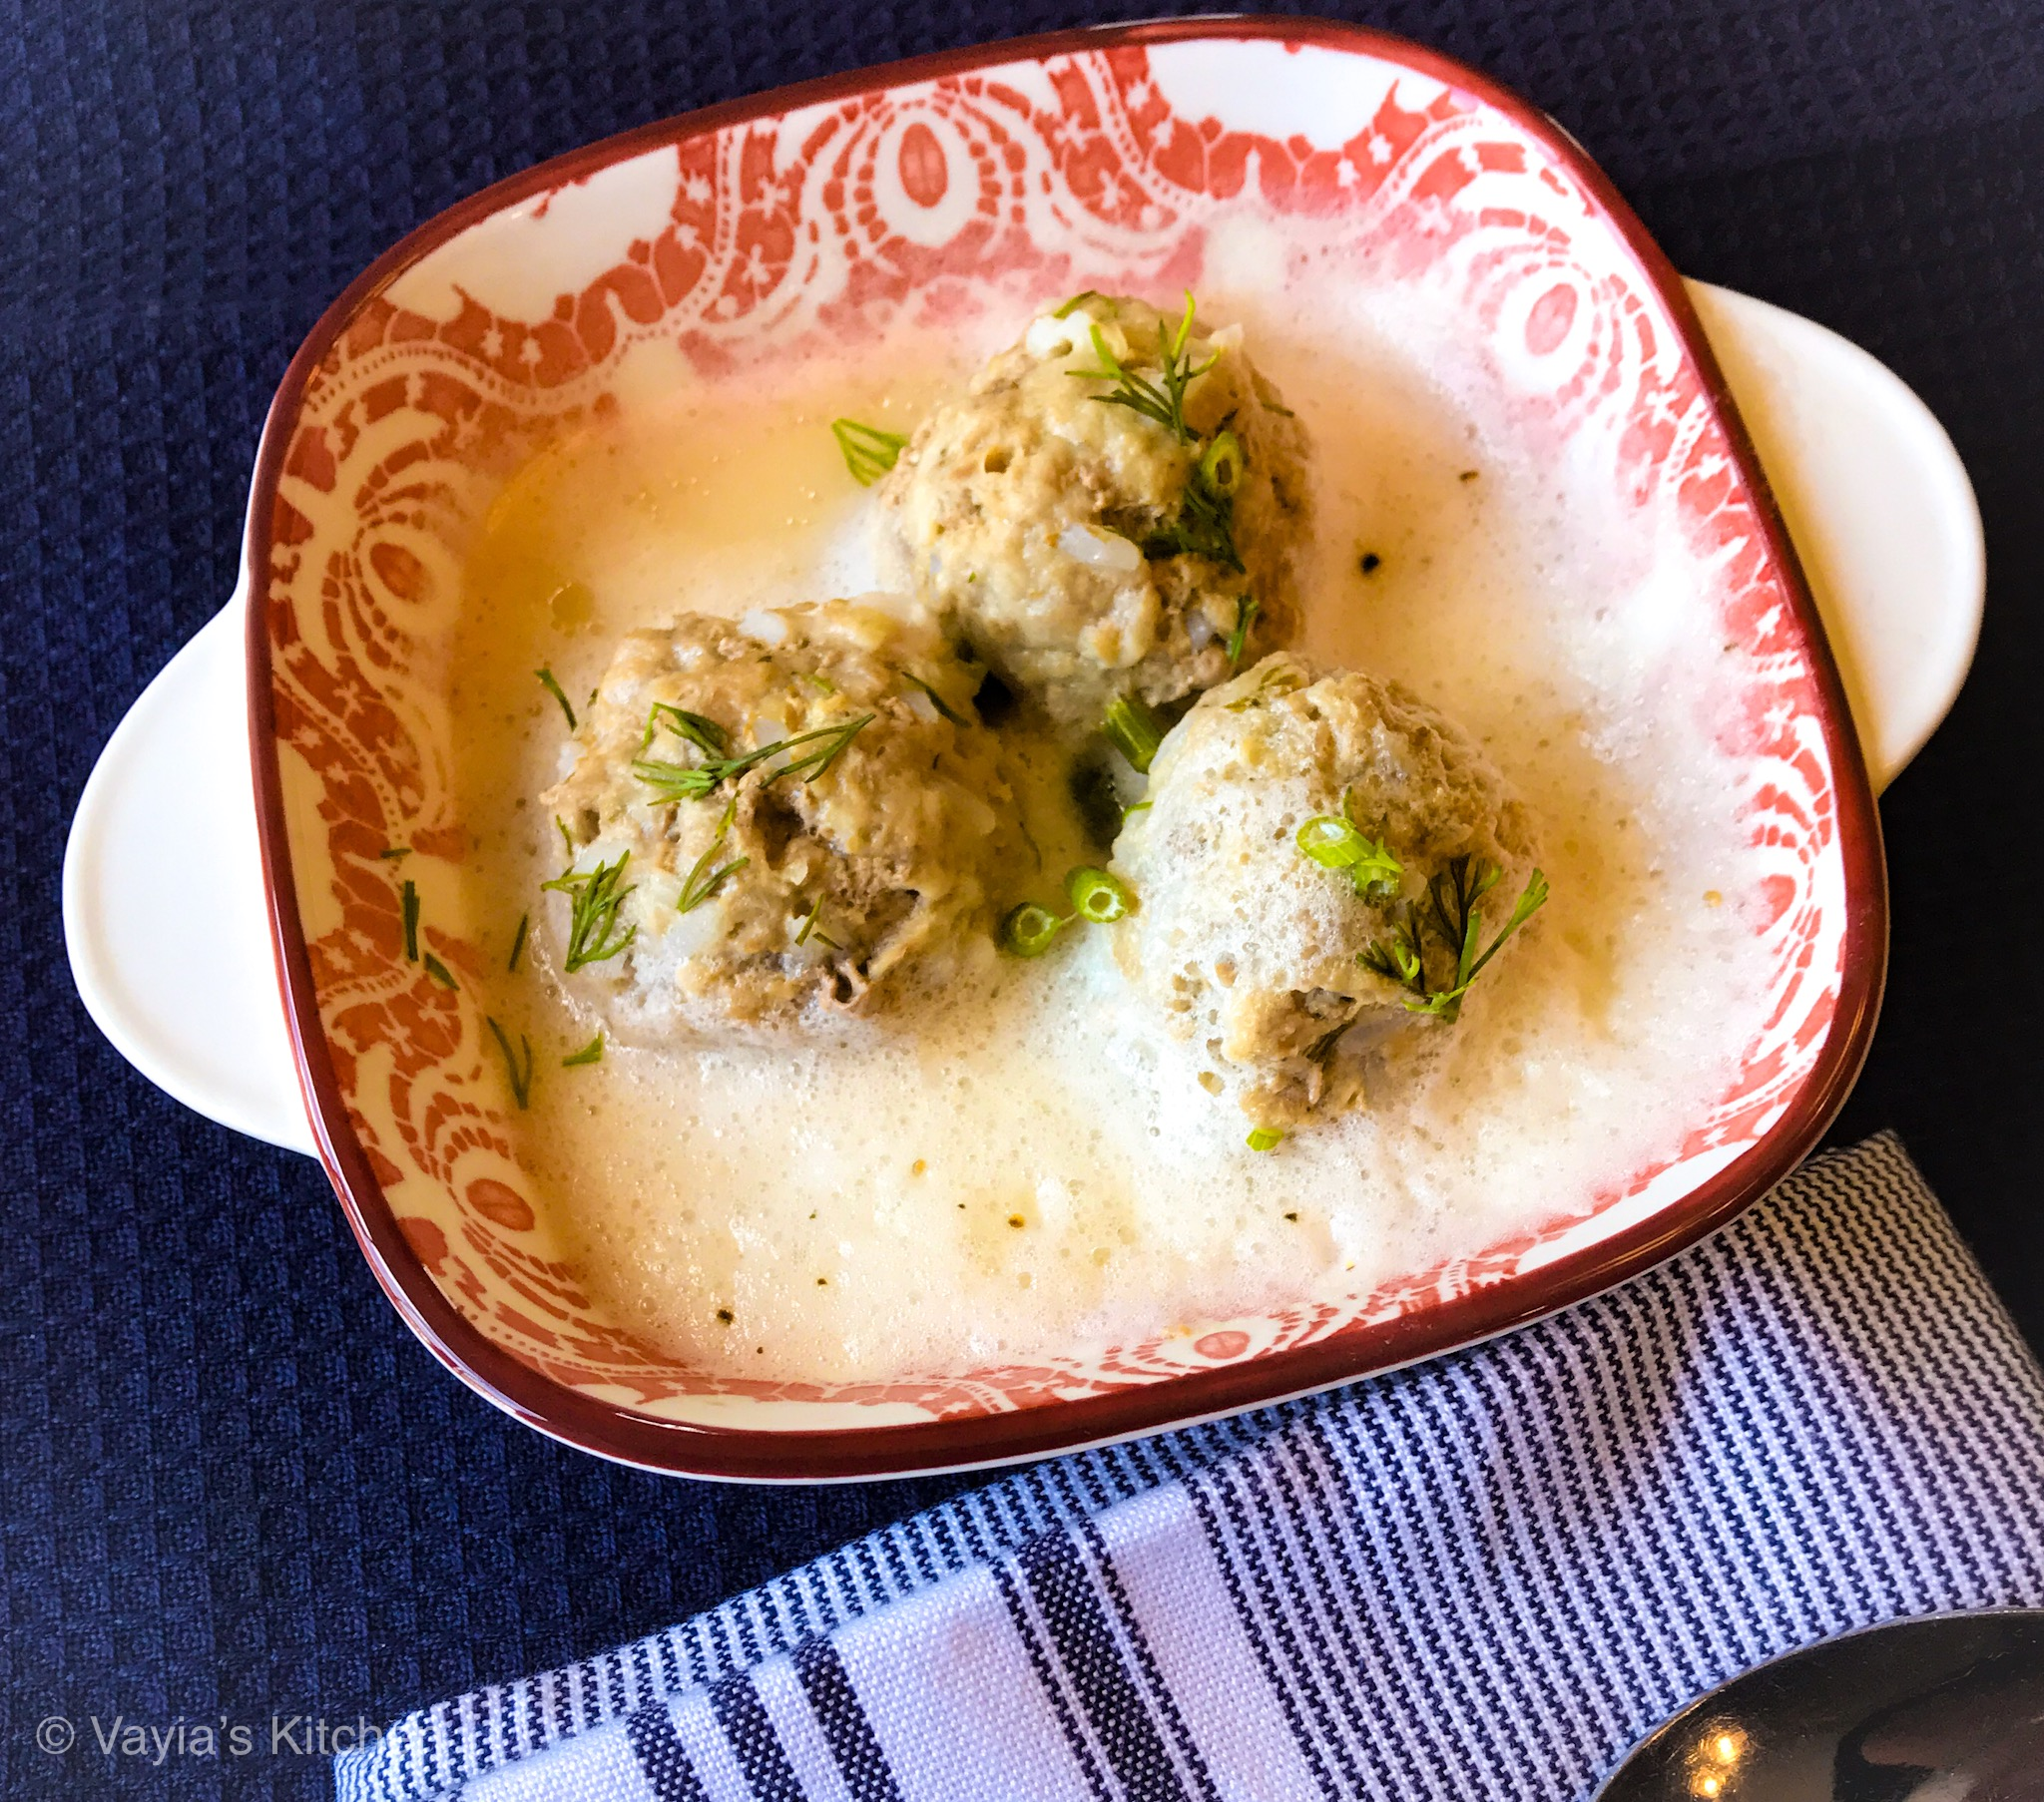 Youvarlakia Avgolemono (Greek Egg Lemon Meatball Soup)